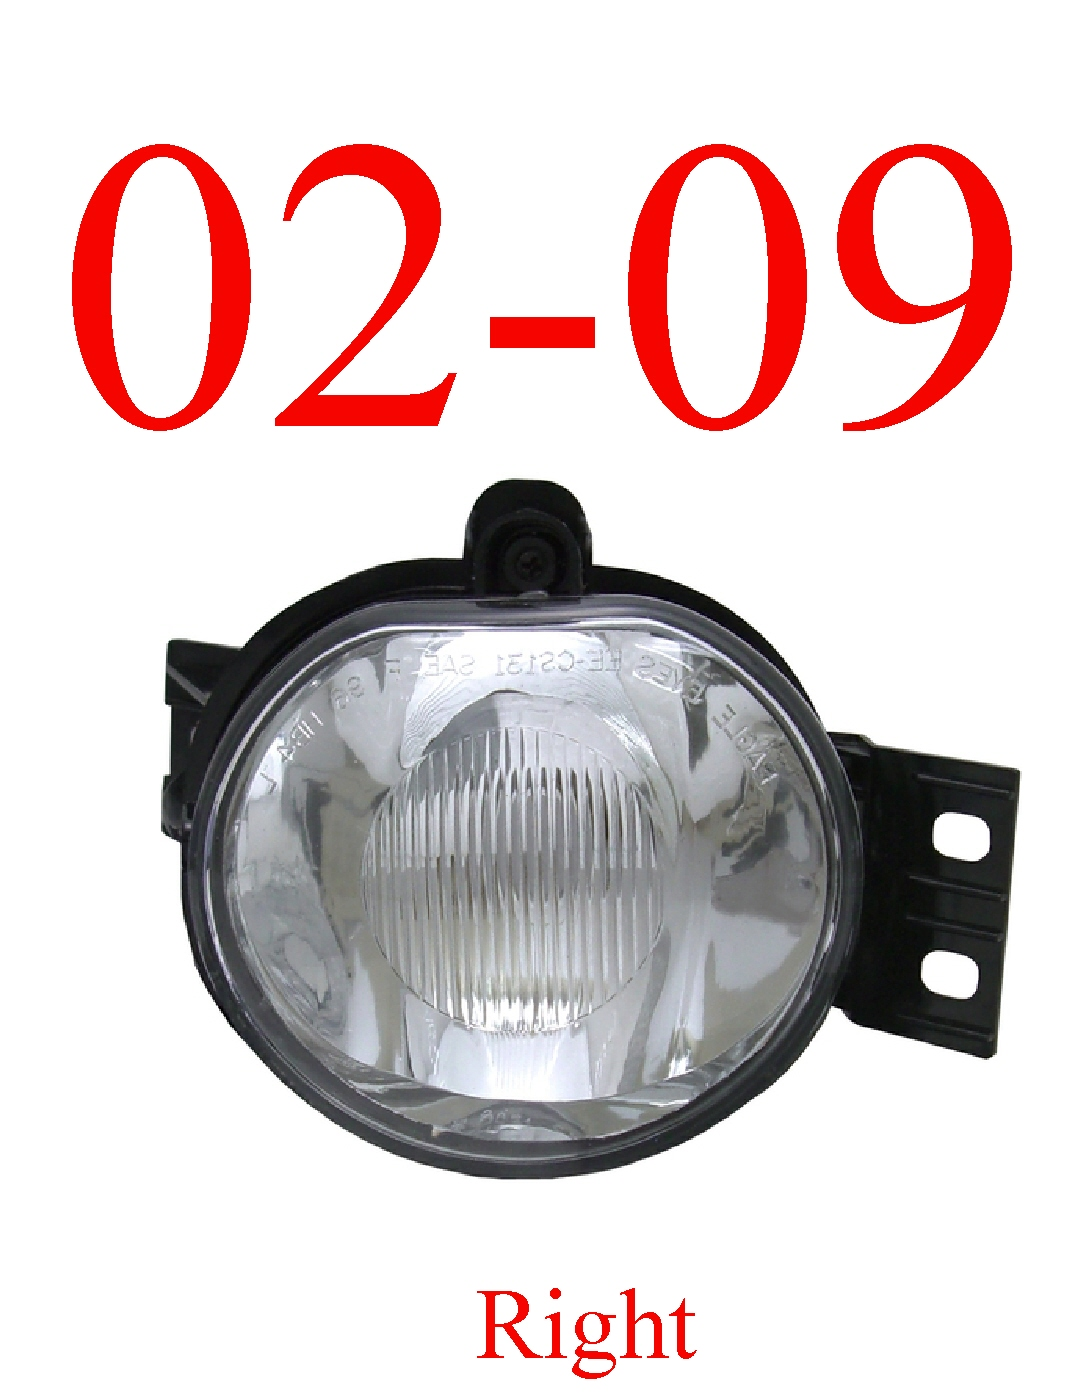 02-09 Dodge Right Fog Light Assembly